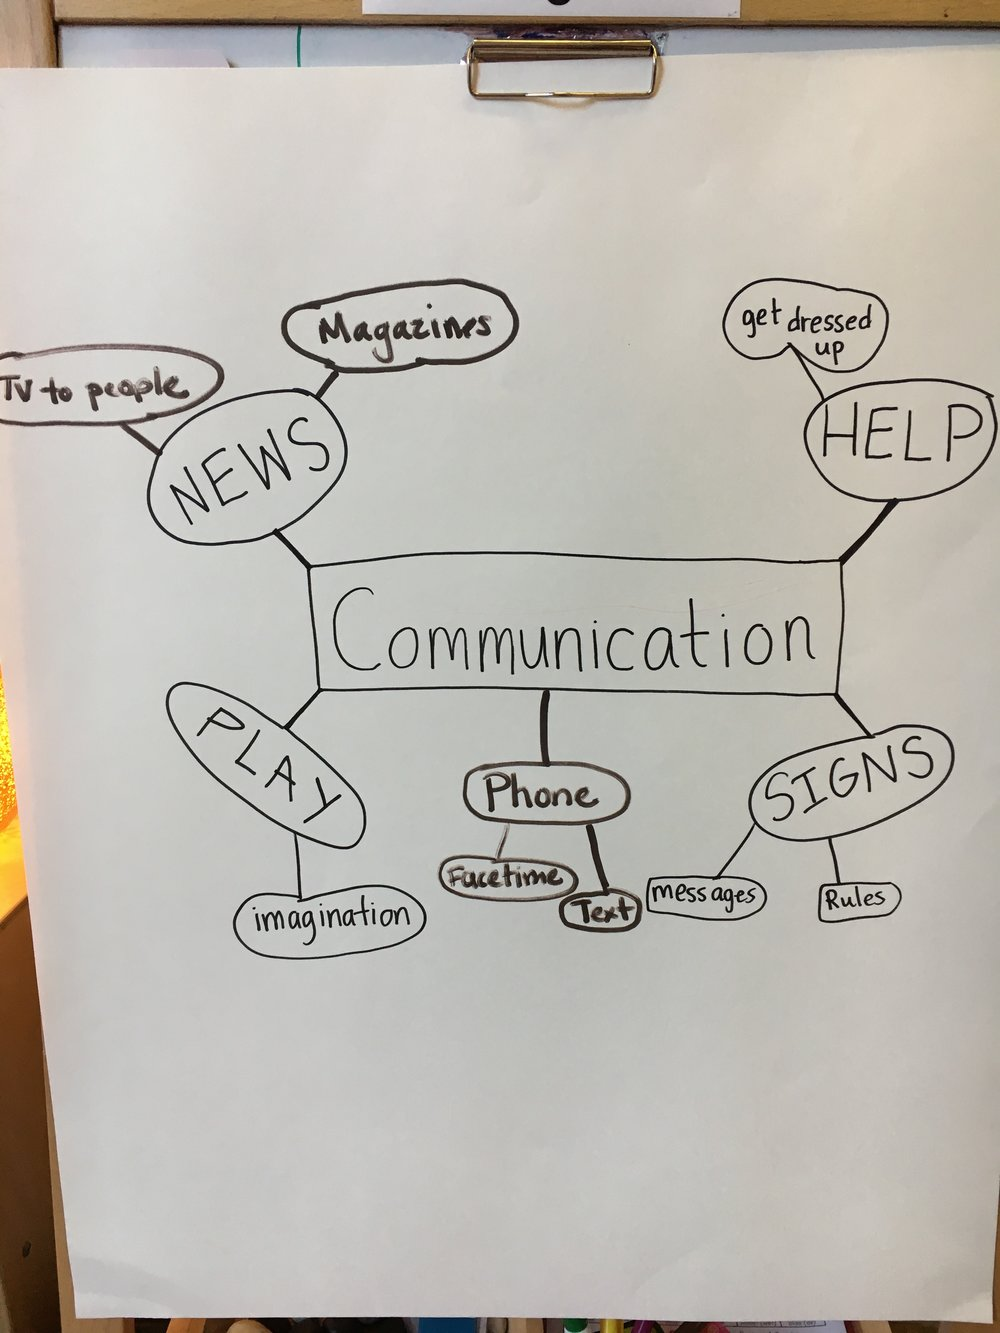 Big ? - How do people communicate?